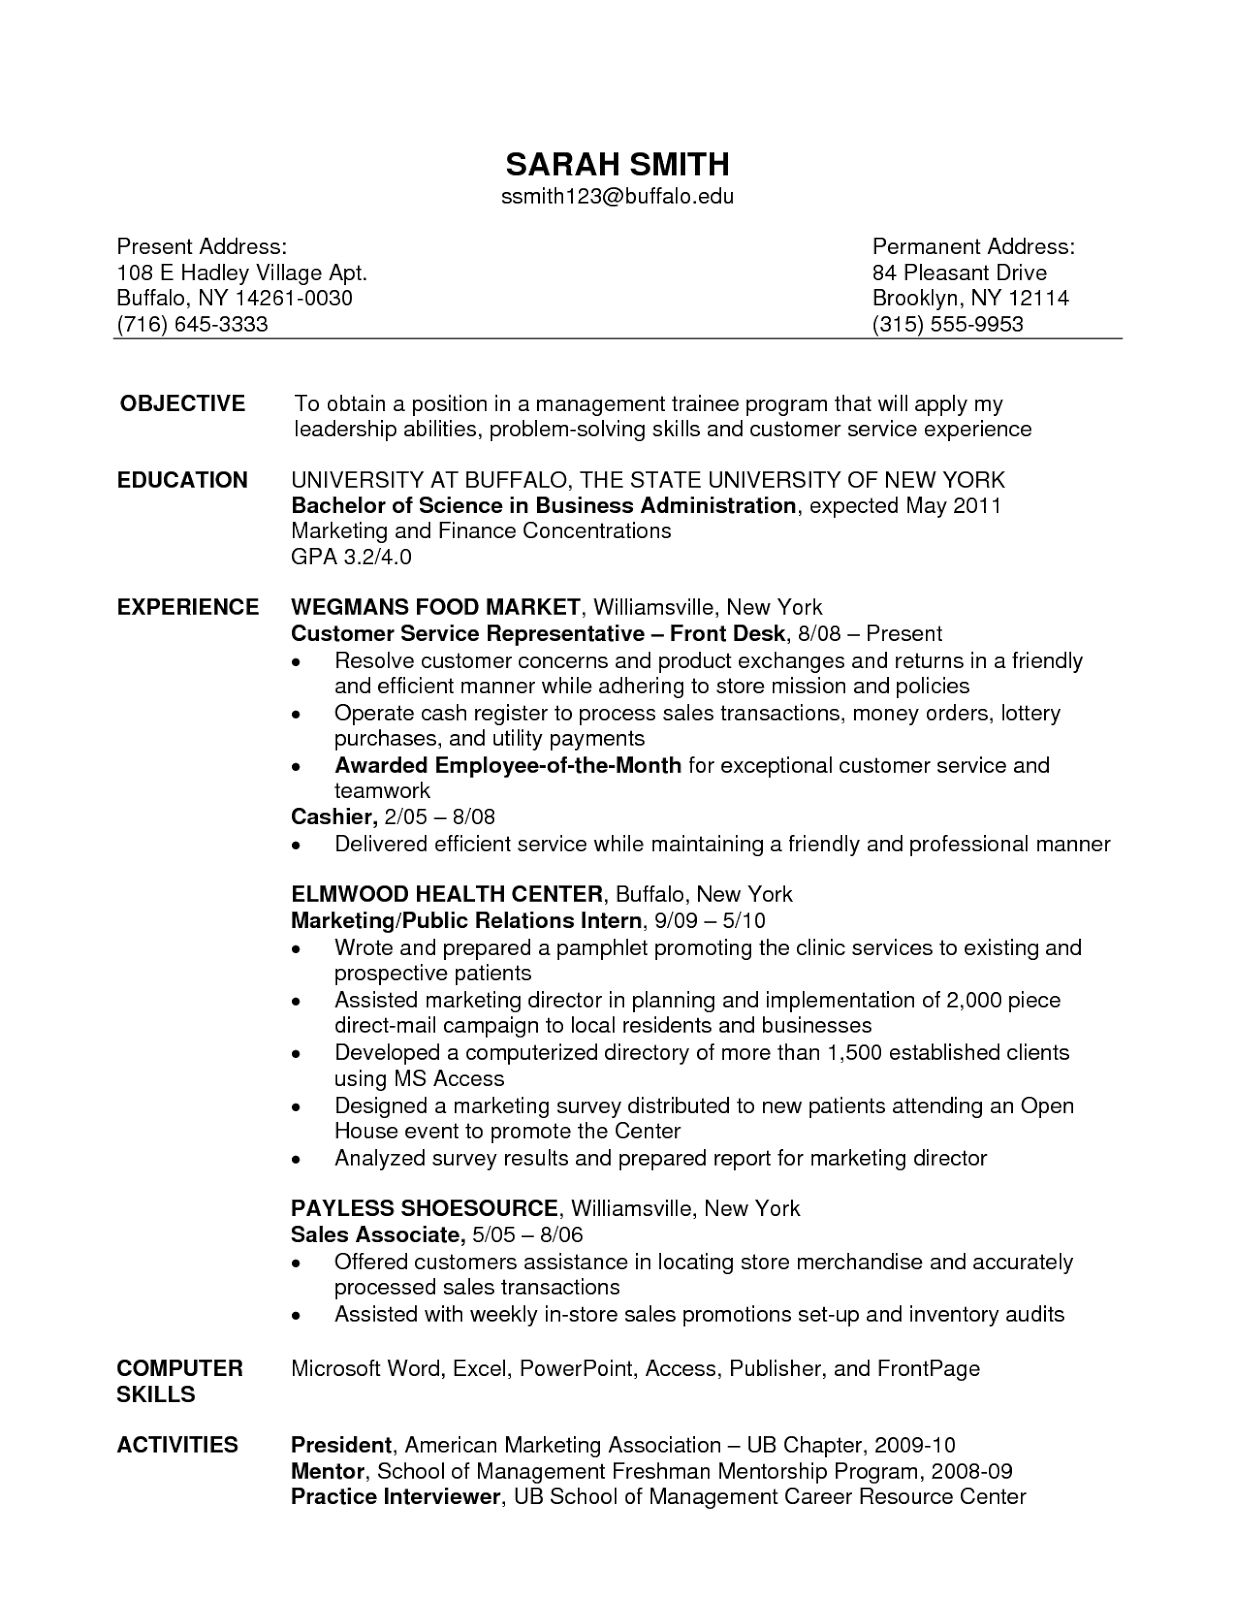 Resume Objective Examples In 2021 Resume Objective Examples Sales Resume Examples Sales Resume